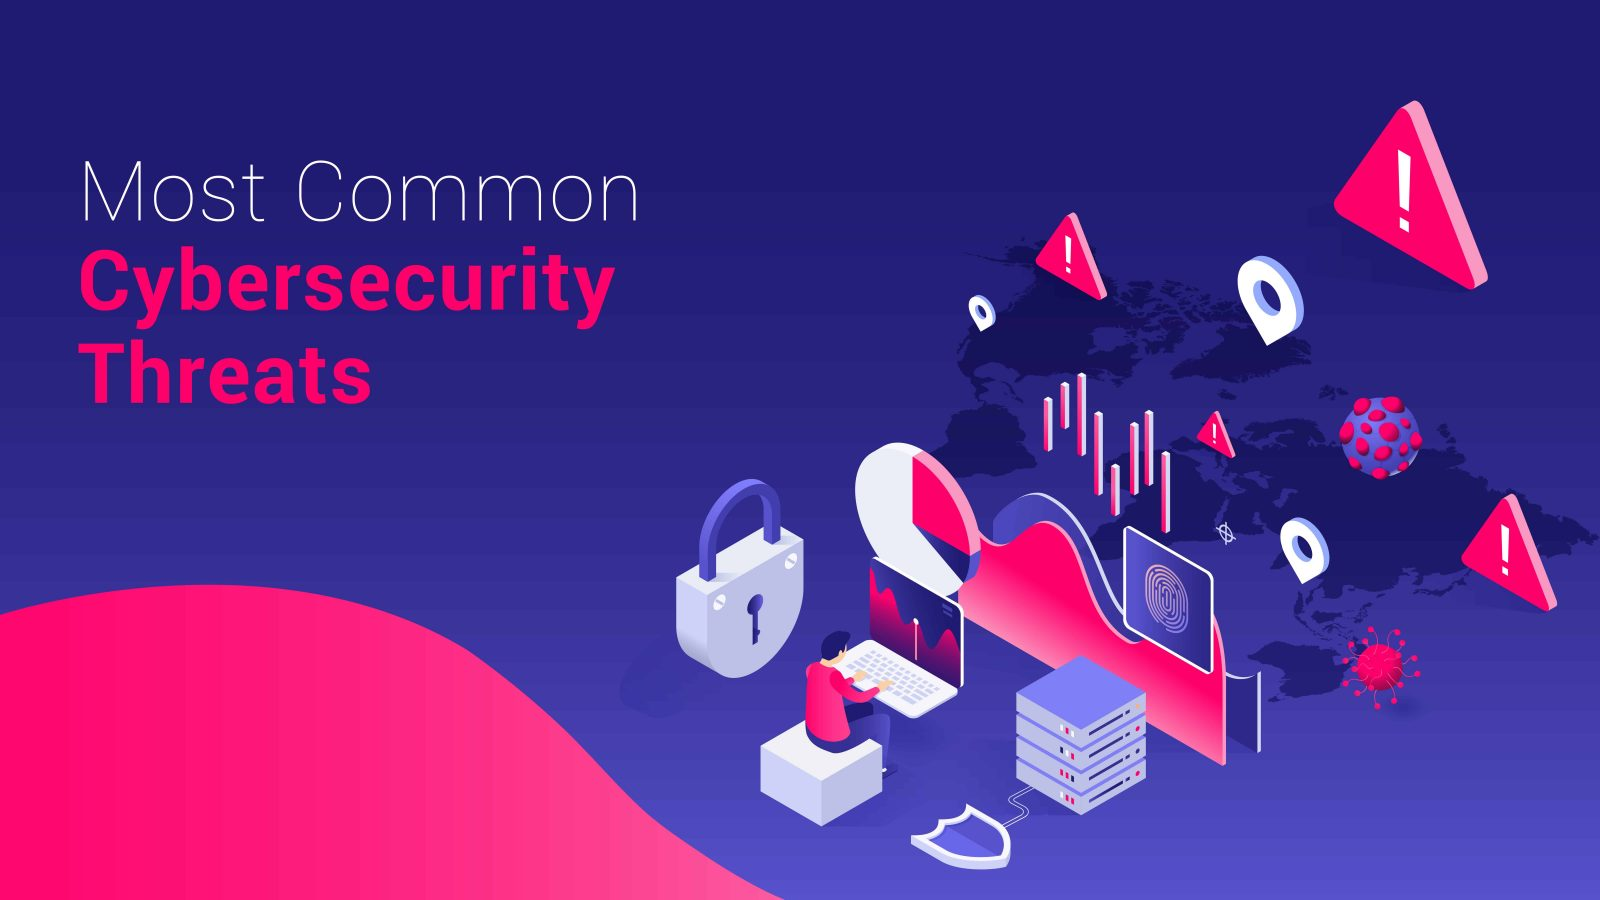 Most common cybersecurity threats